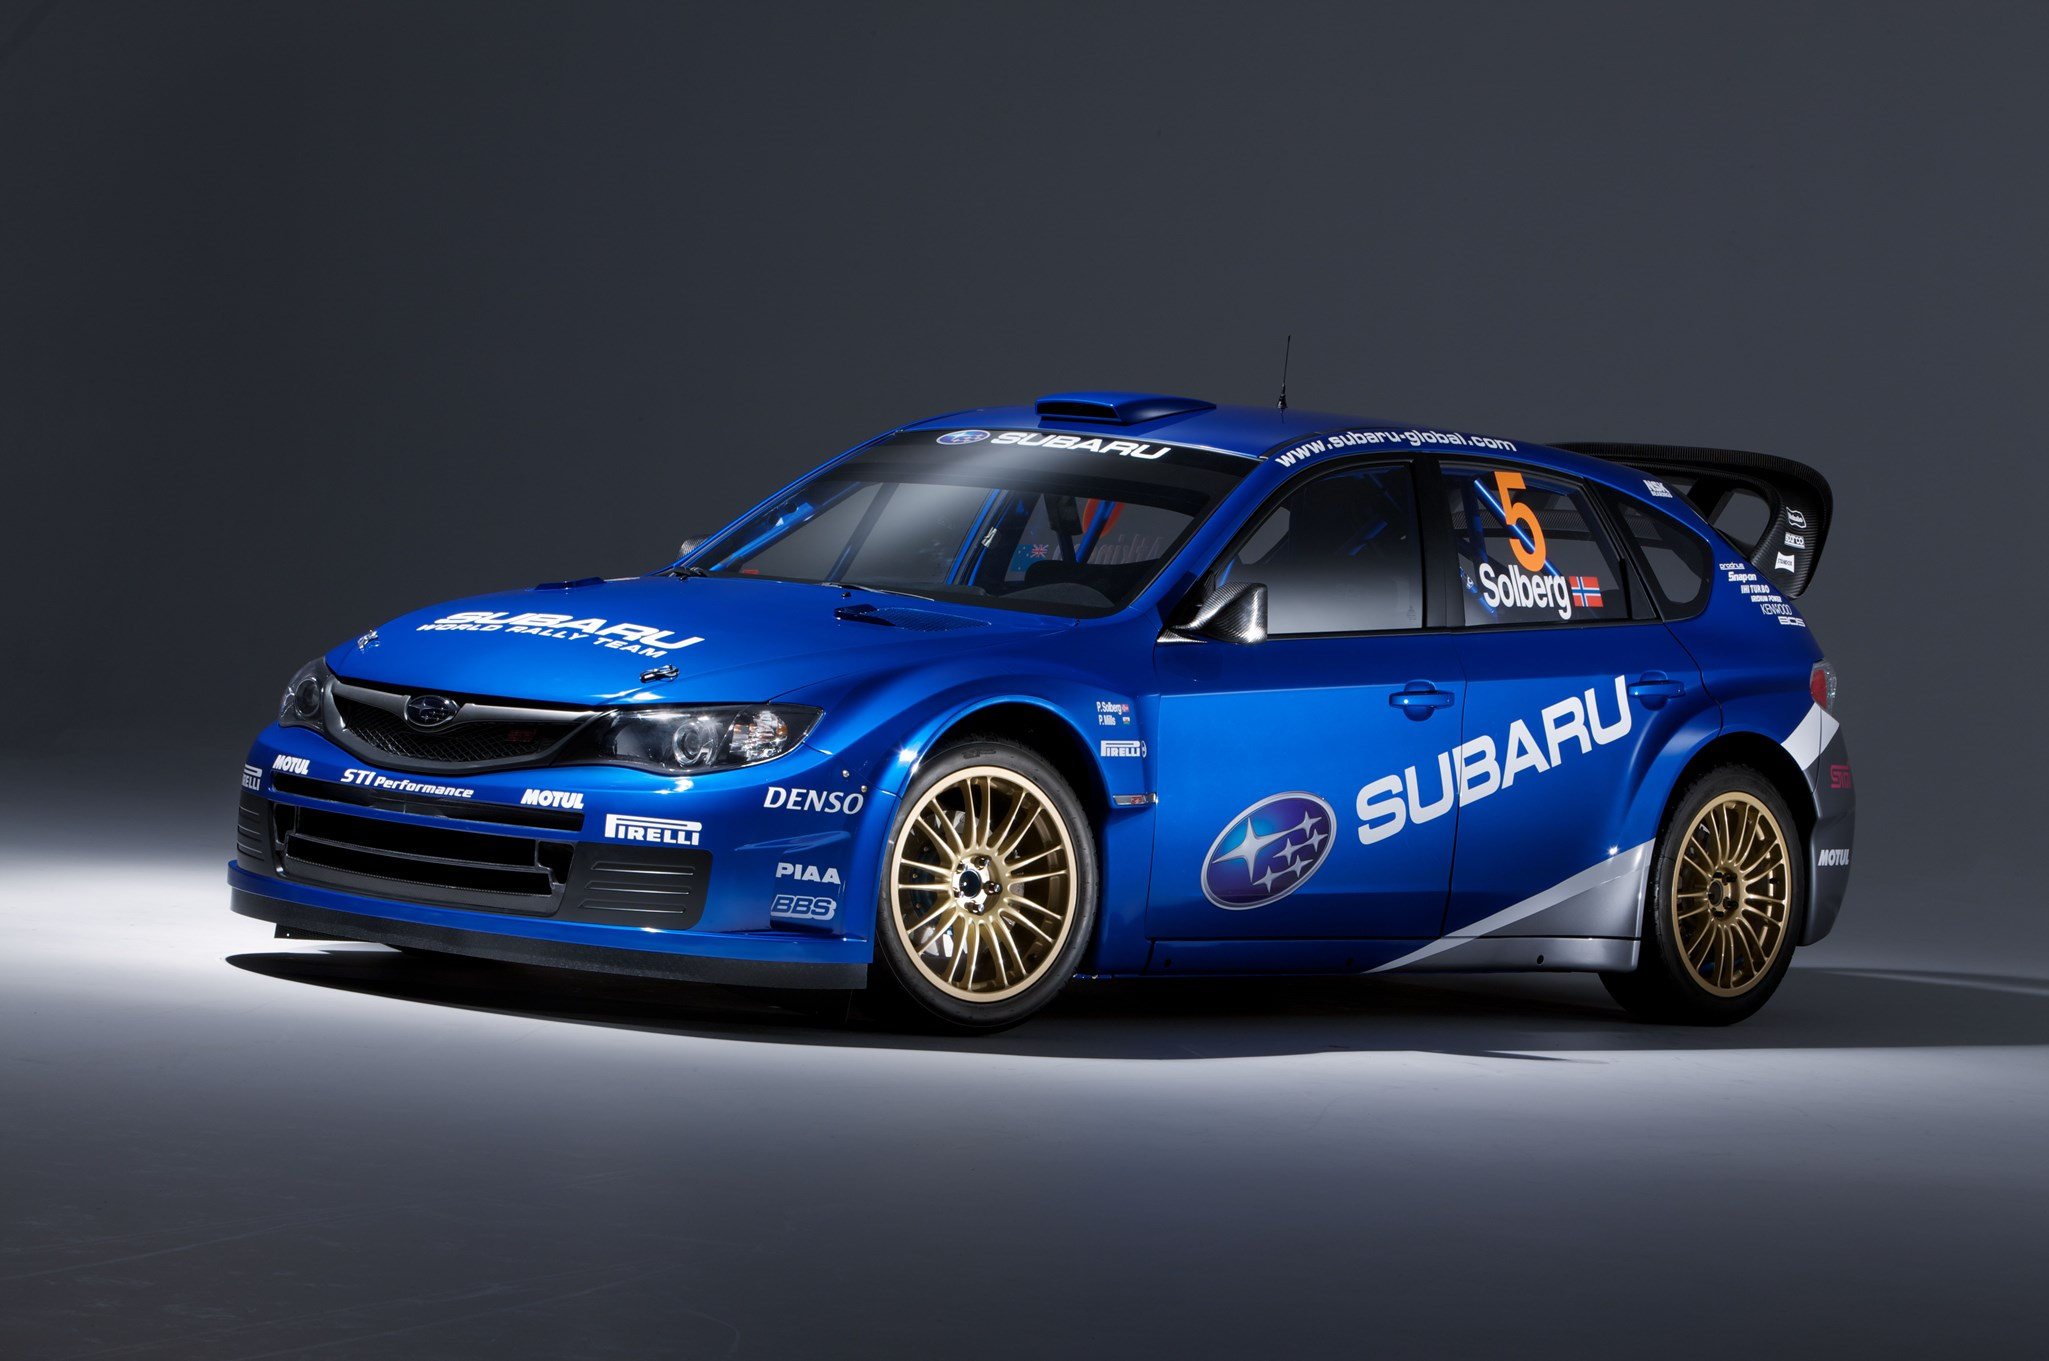 Subaru S Wrc Impreza Rally Car 2008 First Pictures By